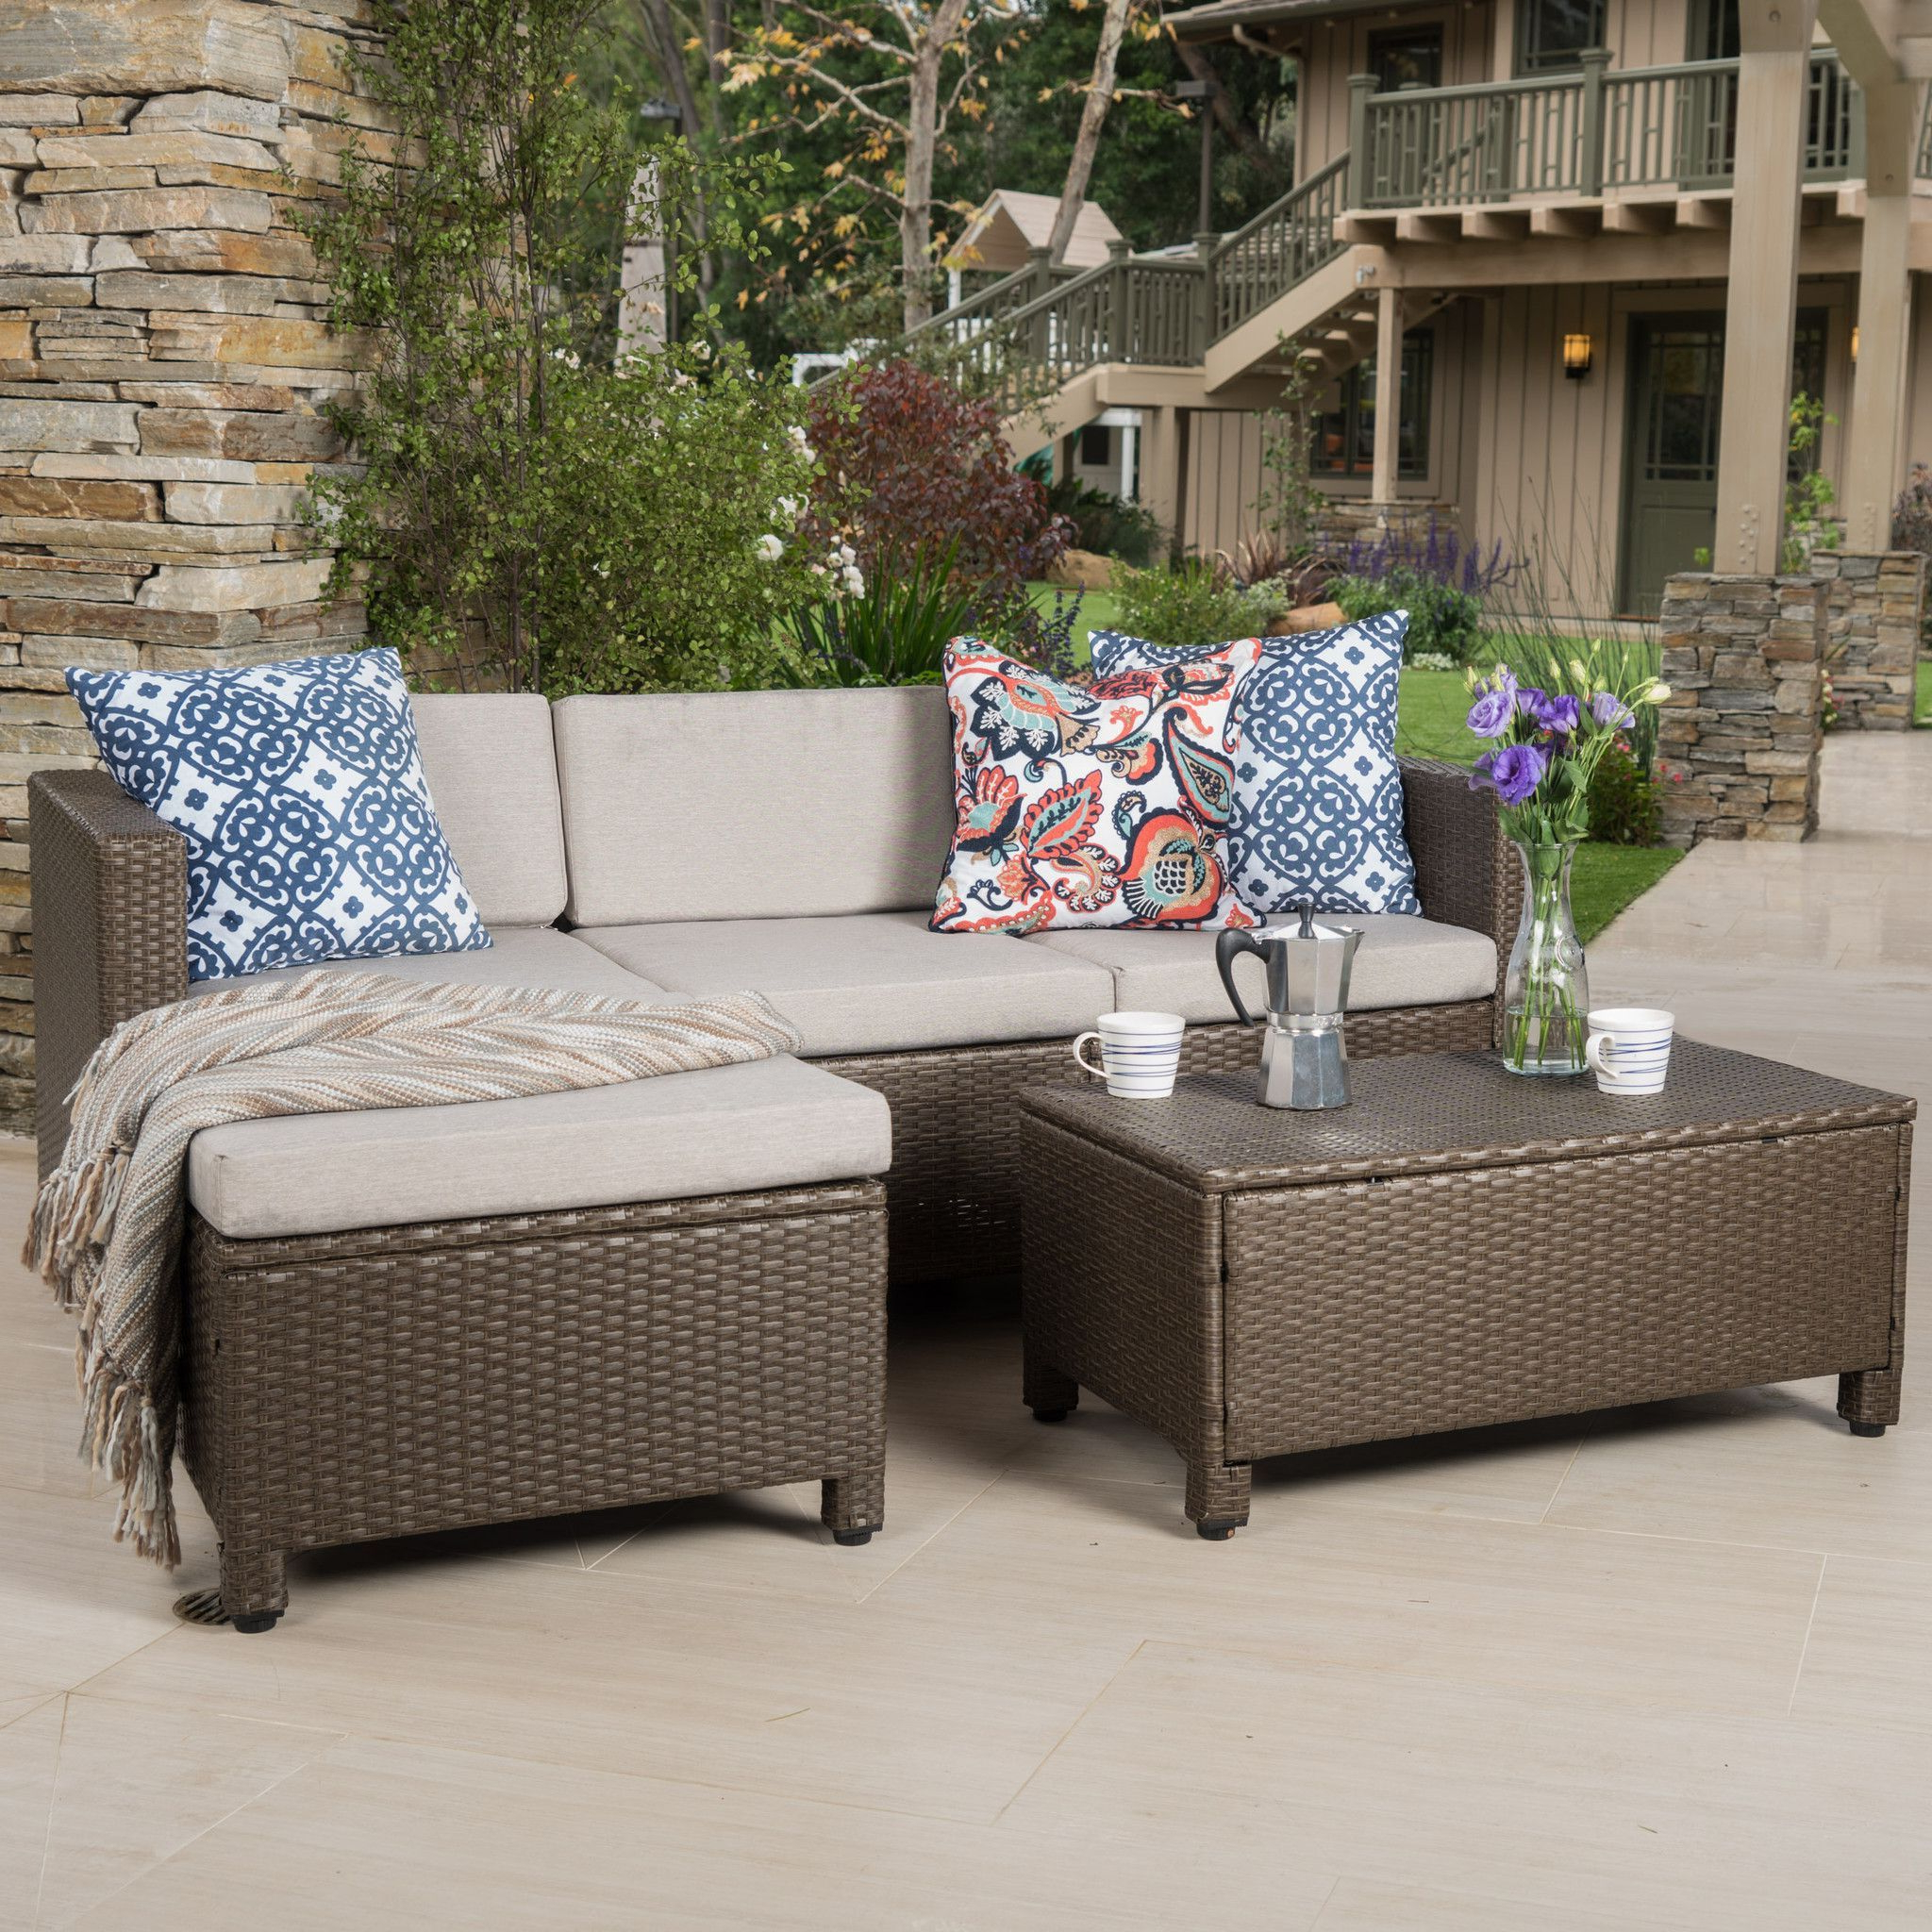 Larsen Patio Sectionals With Cushions In Well Known Budva Outdoor L Shape Brown Wicker Sofa W/ Cushions In 2019 (Gallery 19 of 20)